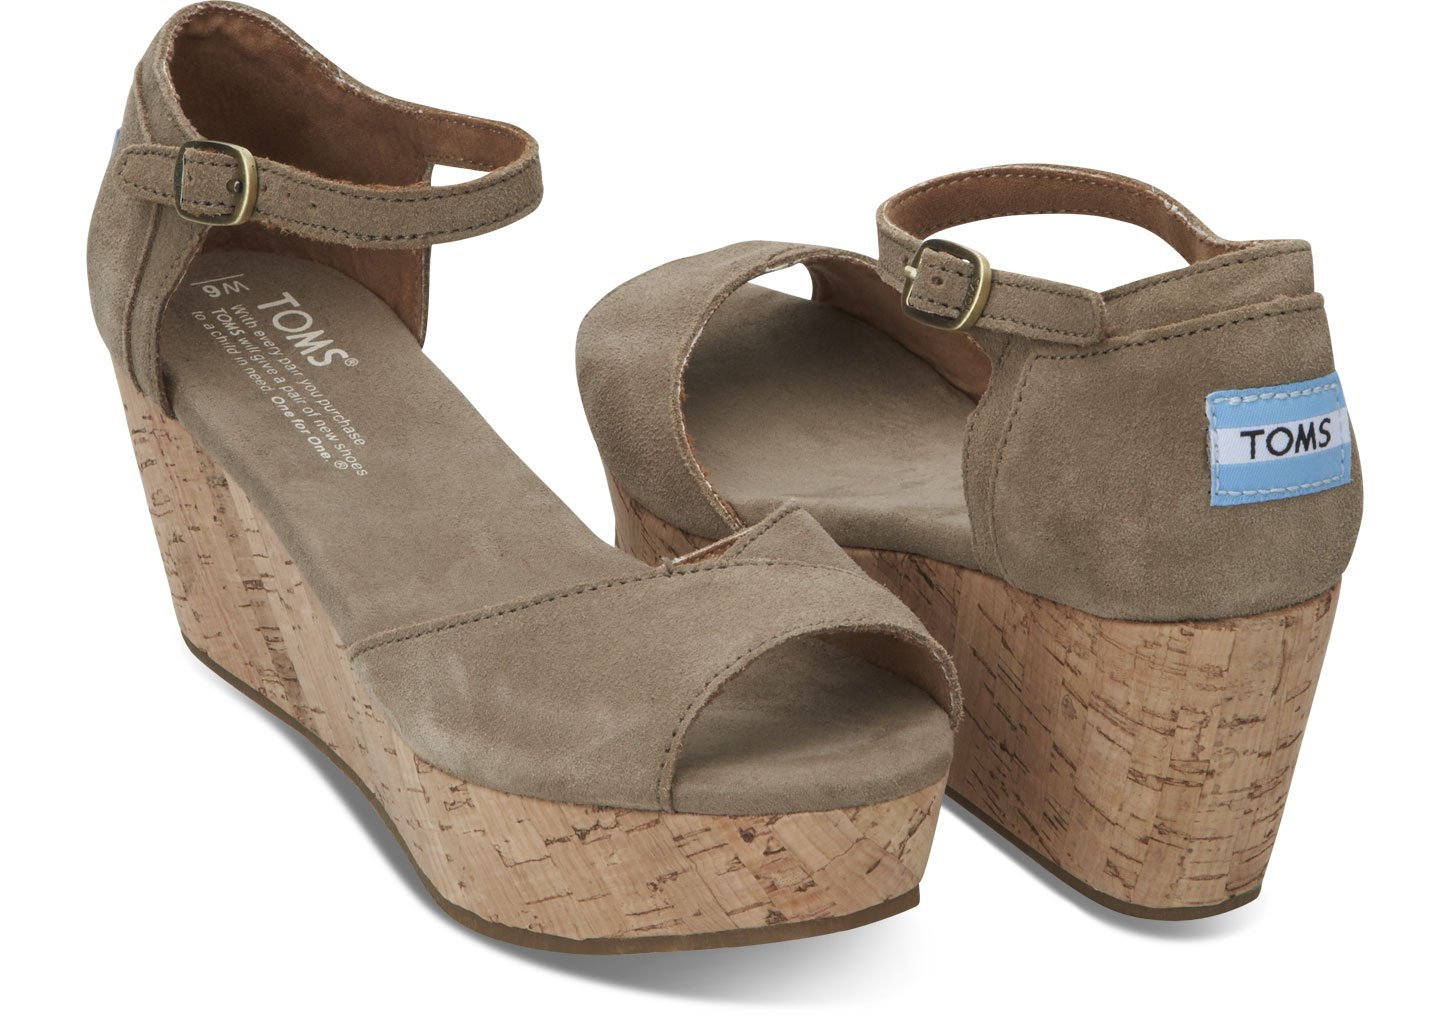 toms taupe suede s platform wedges in brown taupe